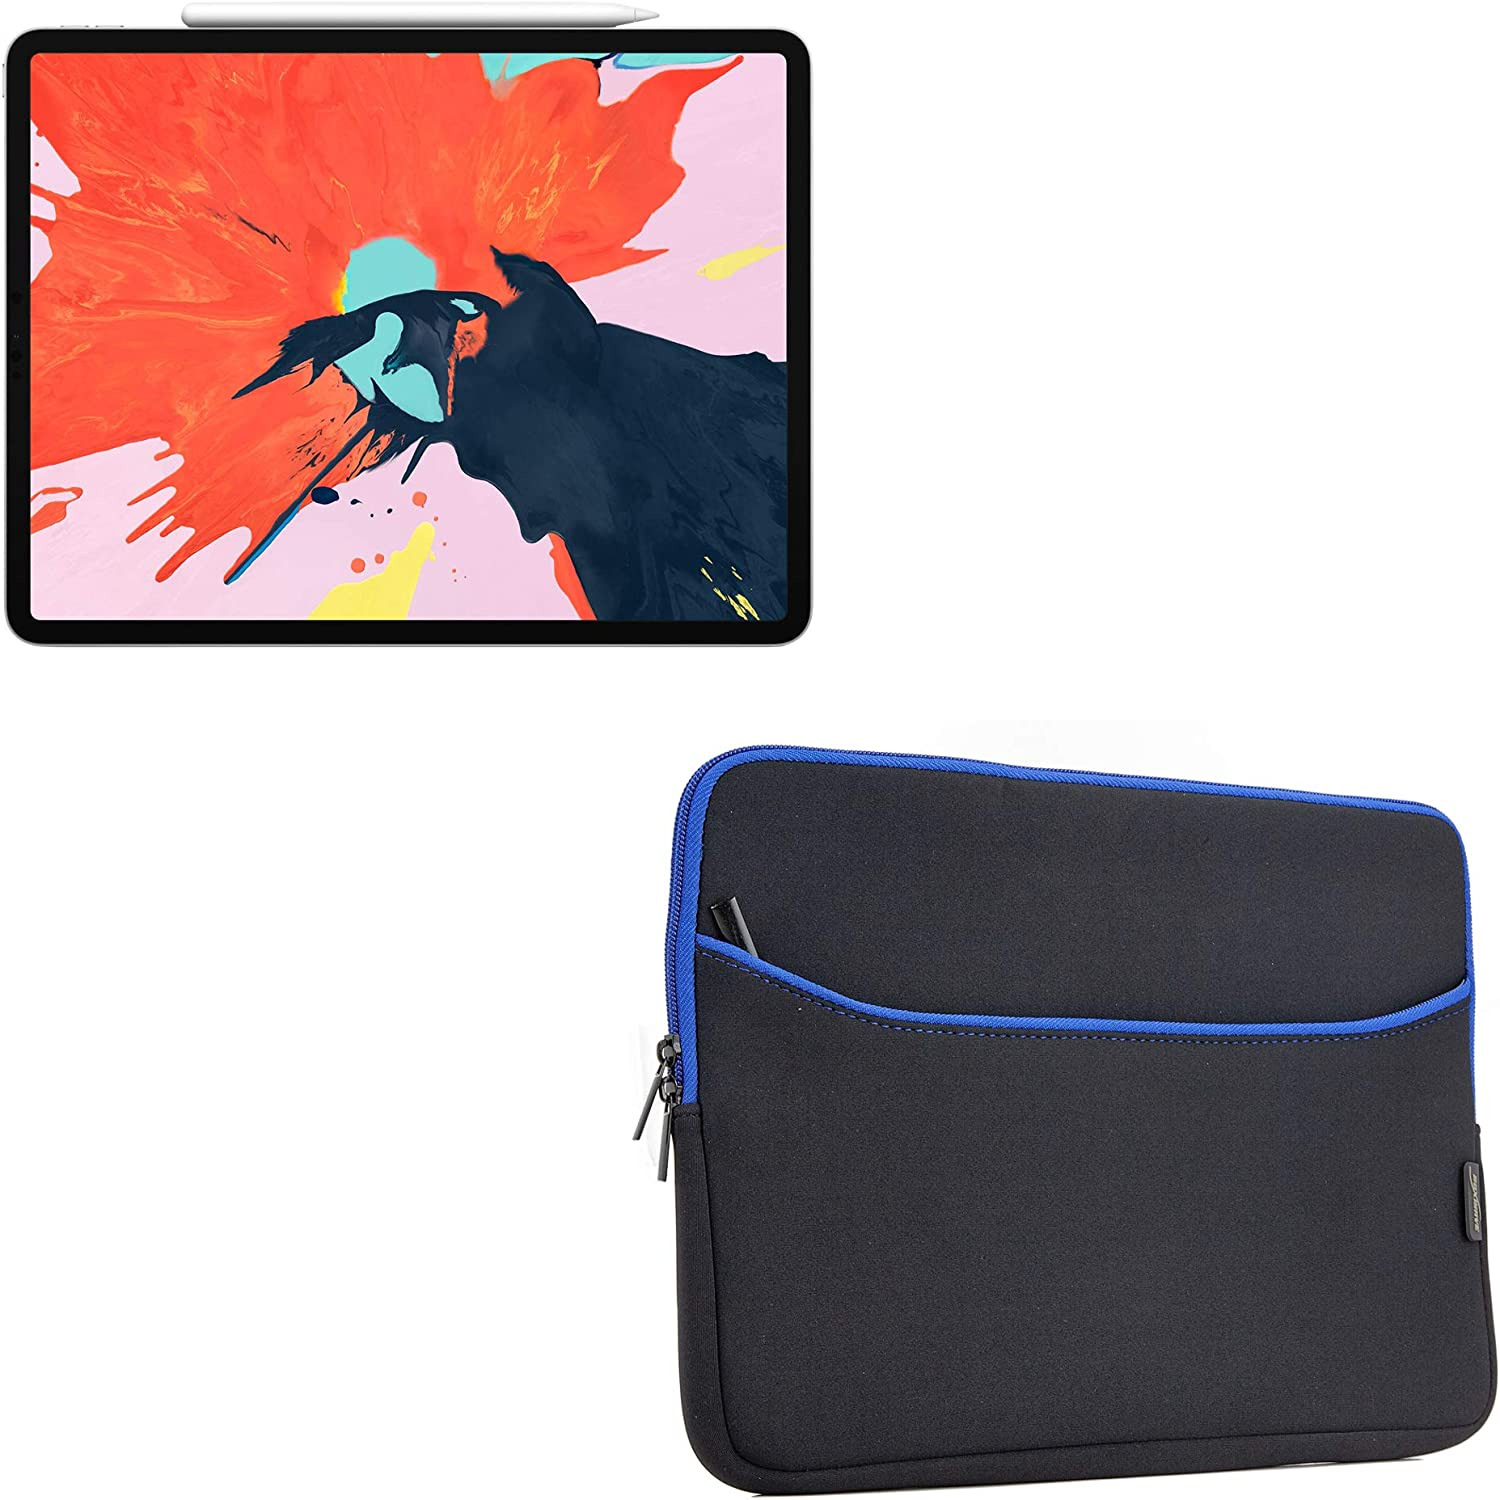 "Apple iPad Pro 12.9"" (2018) Case, BoxWave [SoftSuit with Pocket] Soft Pouch Cover w/Sleeve for Apple iPad Pro 12.9"" (2018) - Jet Black with Blue Trim"